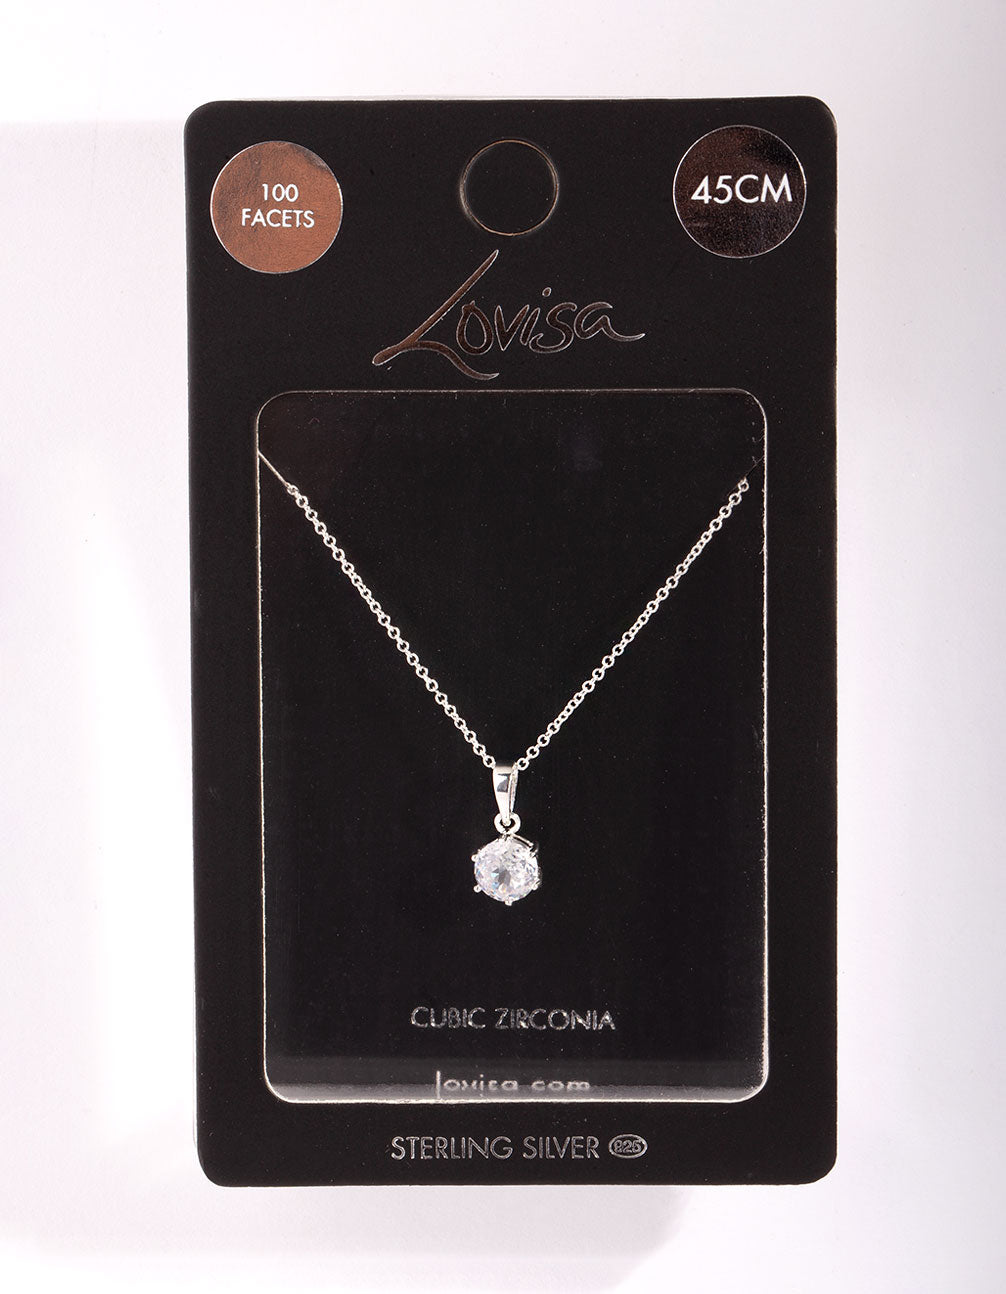 Sterling Silver Cubic Zirconia 100 Facet 6 Claw Necklace